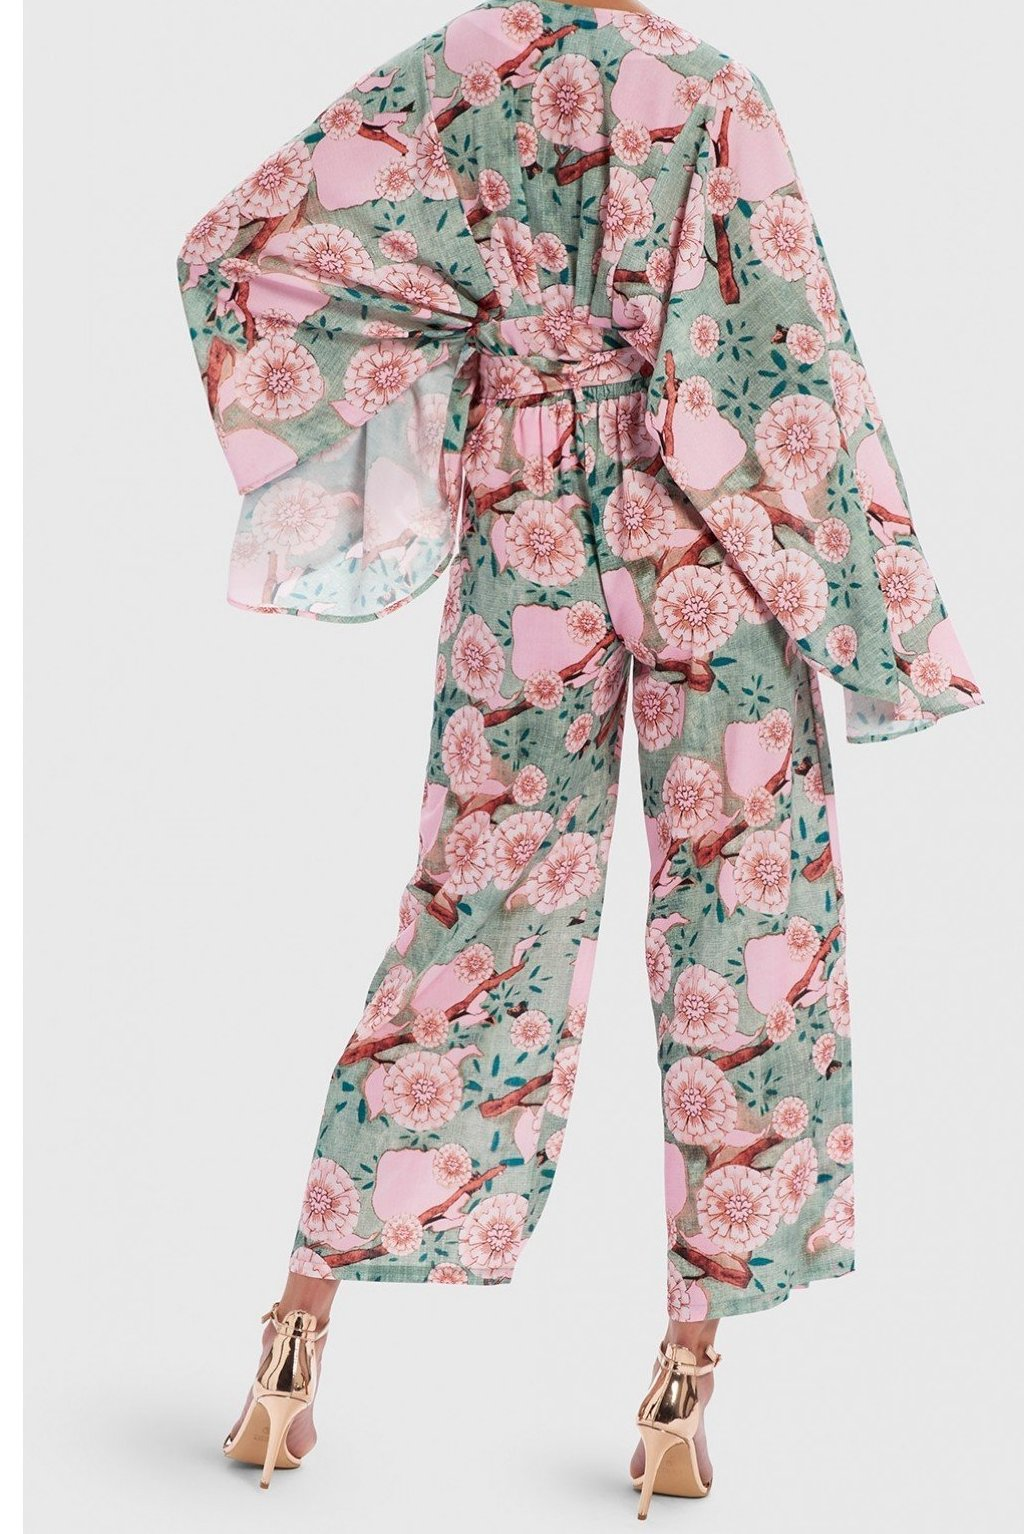 FOREVER UNIQUE U FLORAL PRINT CO-ORD - MINT/PINK